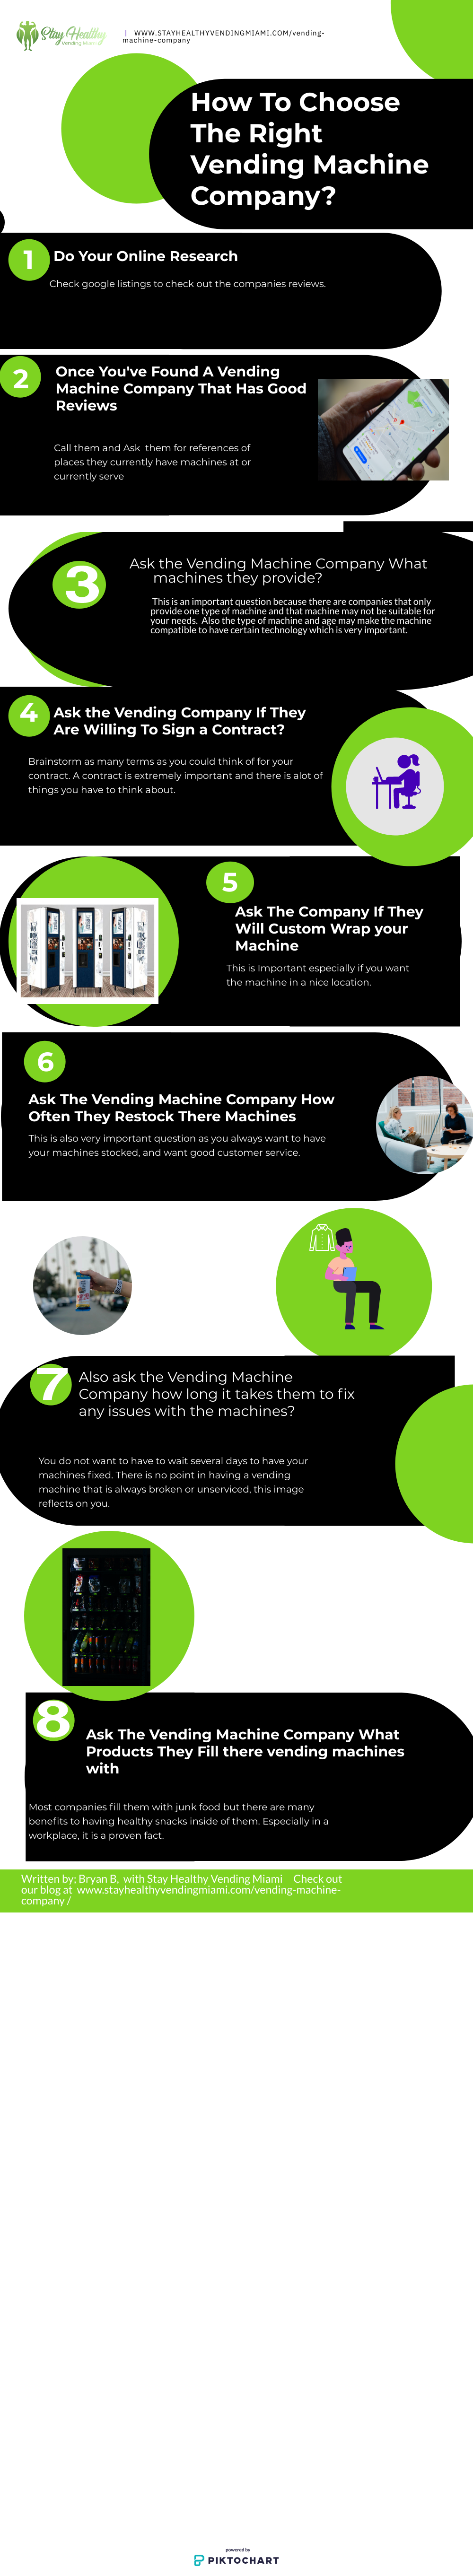 How To Choose The Right Vending Machine Company